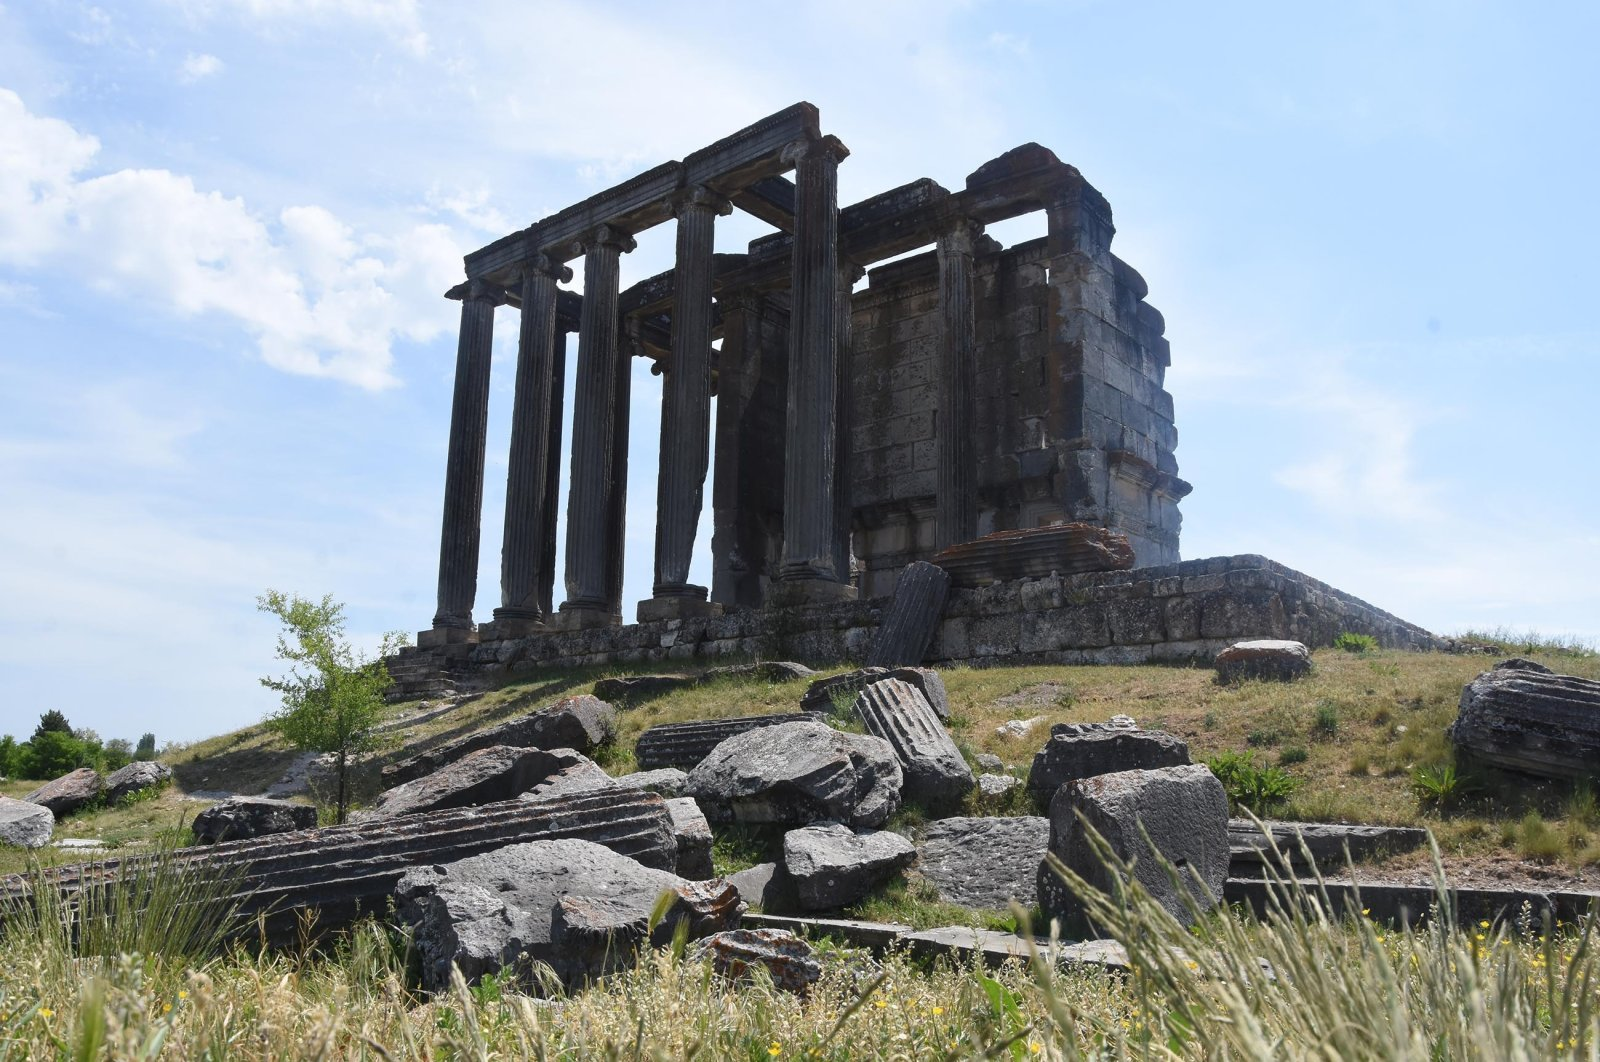 The ruins of the Temple of Zeus still stand at the ancient city of Aizanoi in Kütahya, Turkey, May 30, 2021. (DHA Photo)